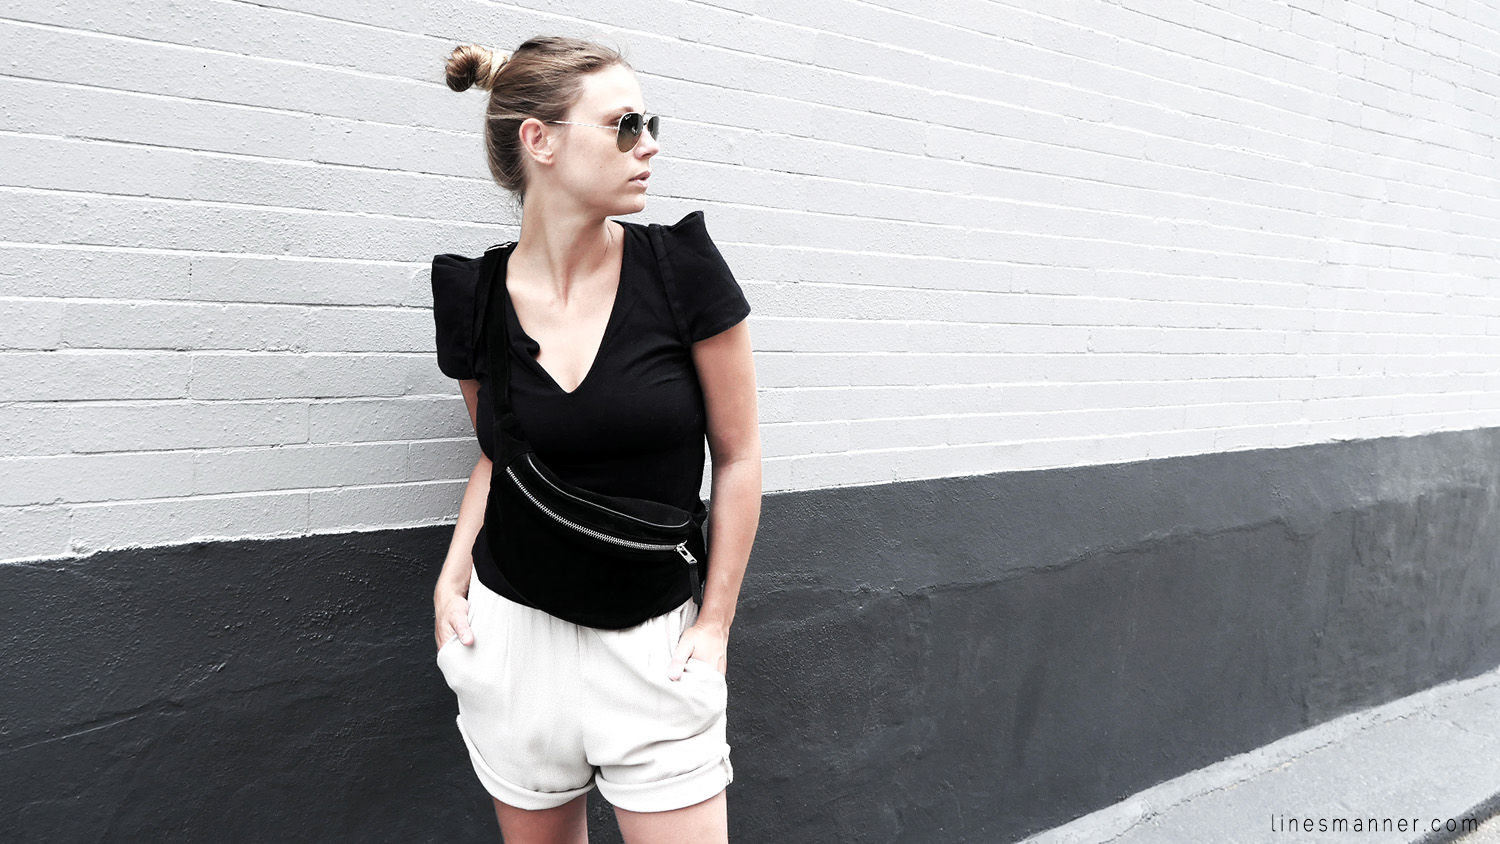 Lines-Manner-Minimalism-Comfy-Bumbag-Aesthetic-Effortless_Chic-Structured-Simplicity-Clean-Relaxed-Trend-3